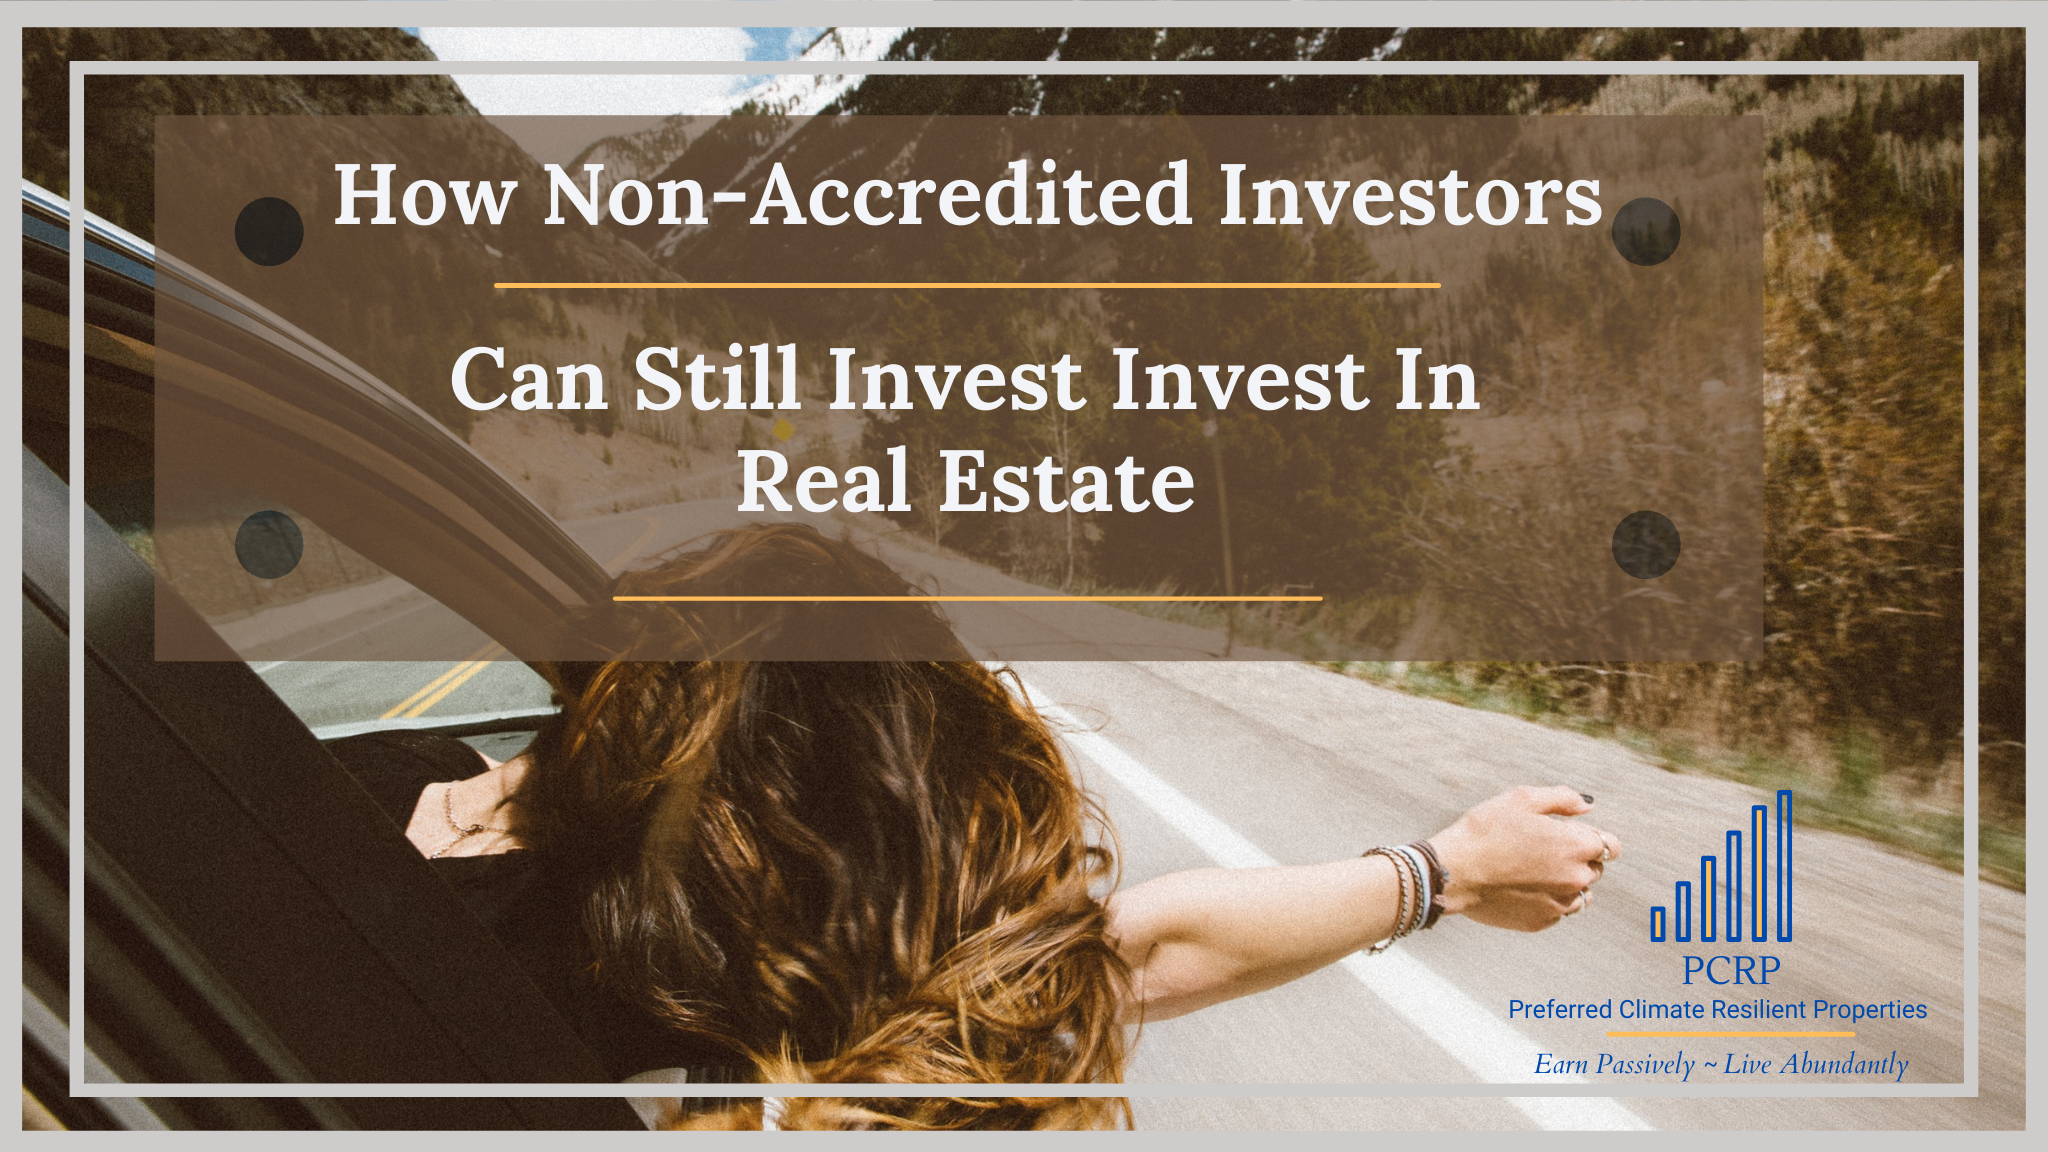 How Non-Accredited Investors Can Still Invest In Real Estate